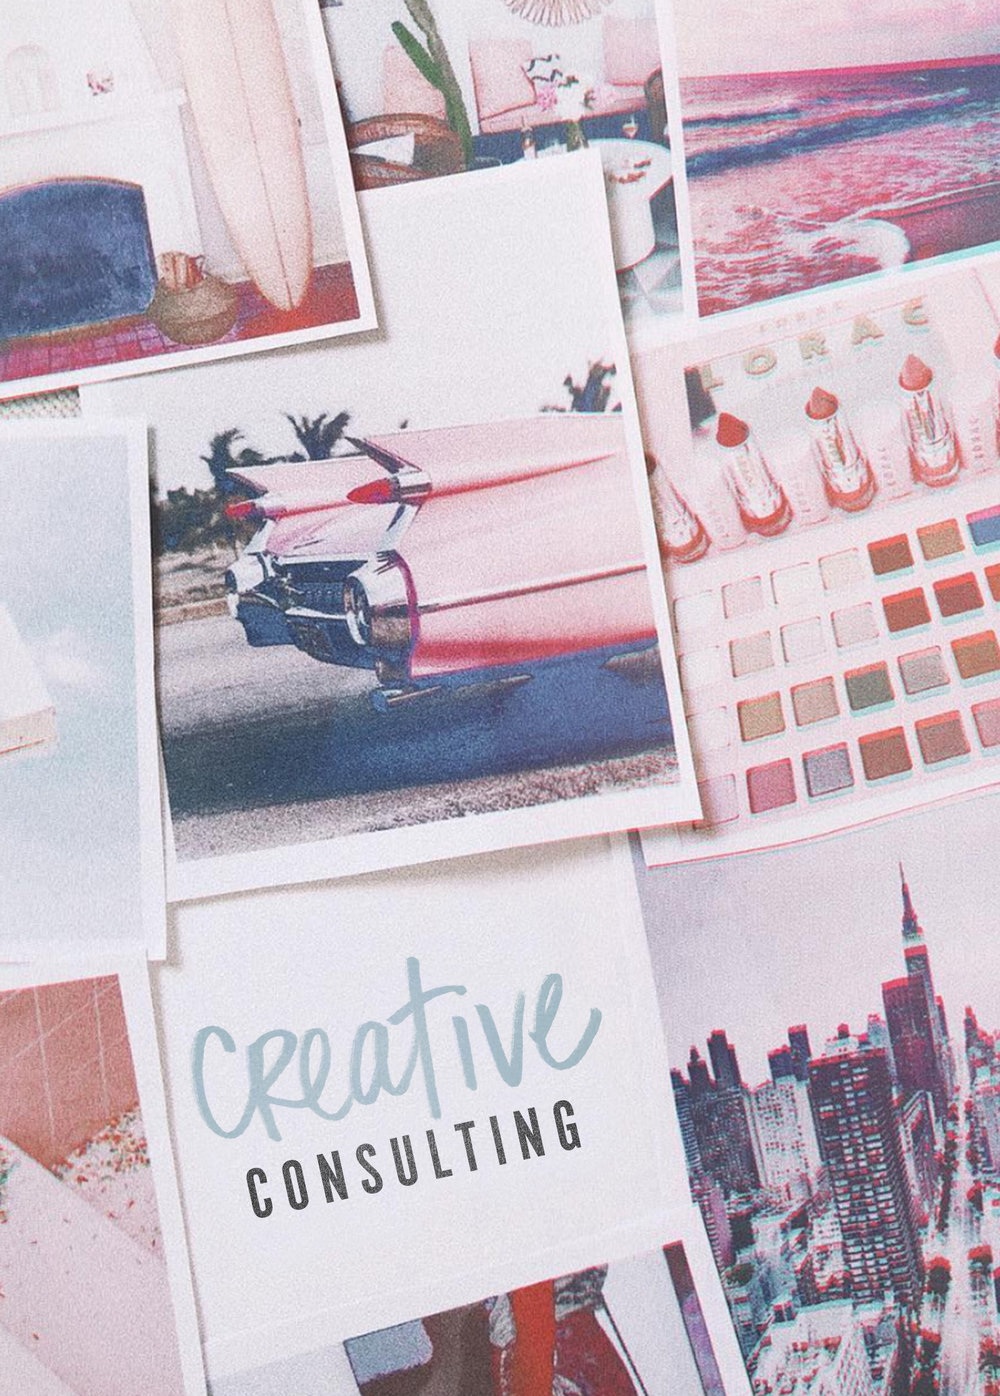 kelly-wirht-creative-consulting-moodboard-2.jpg